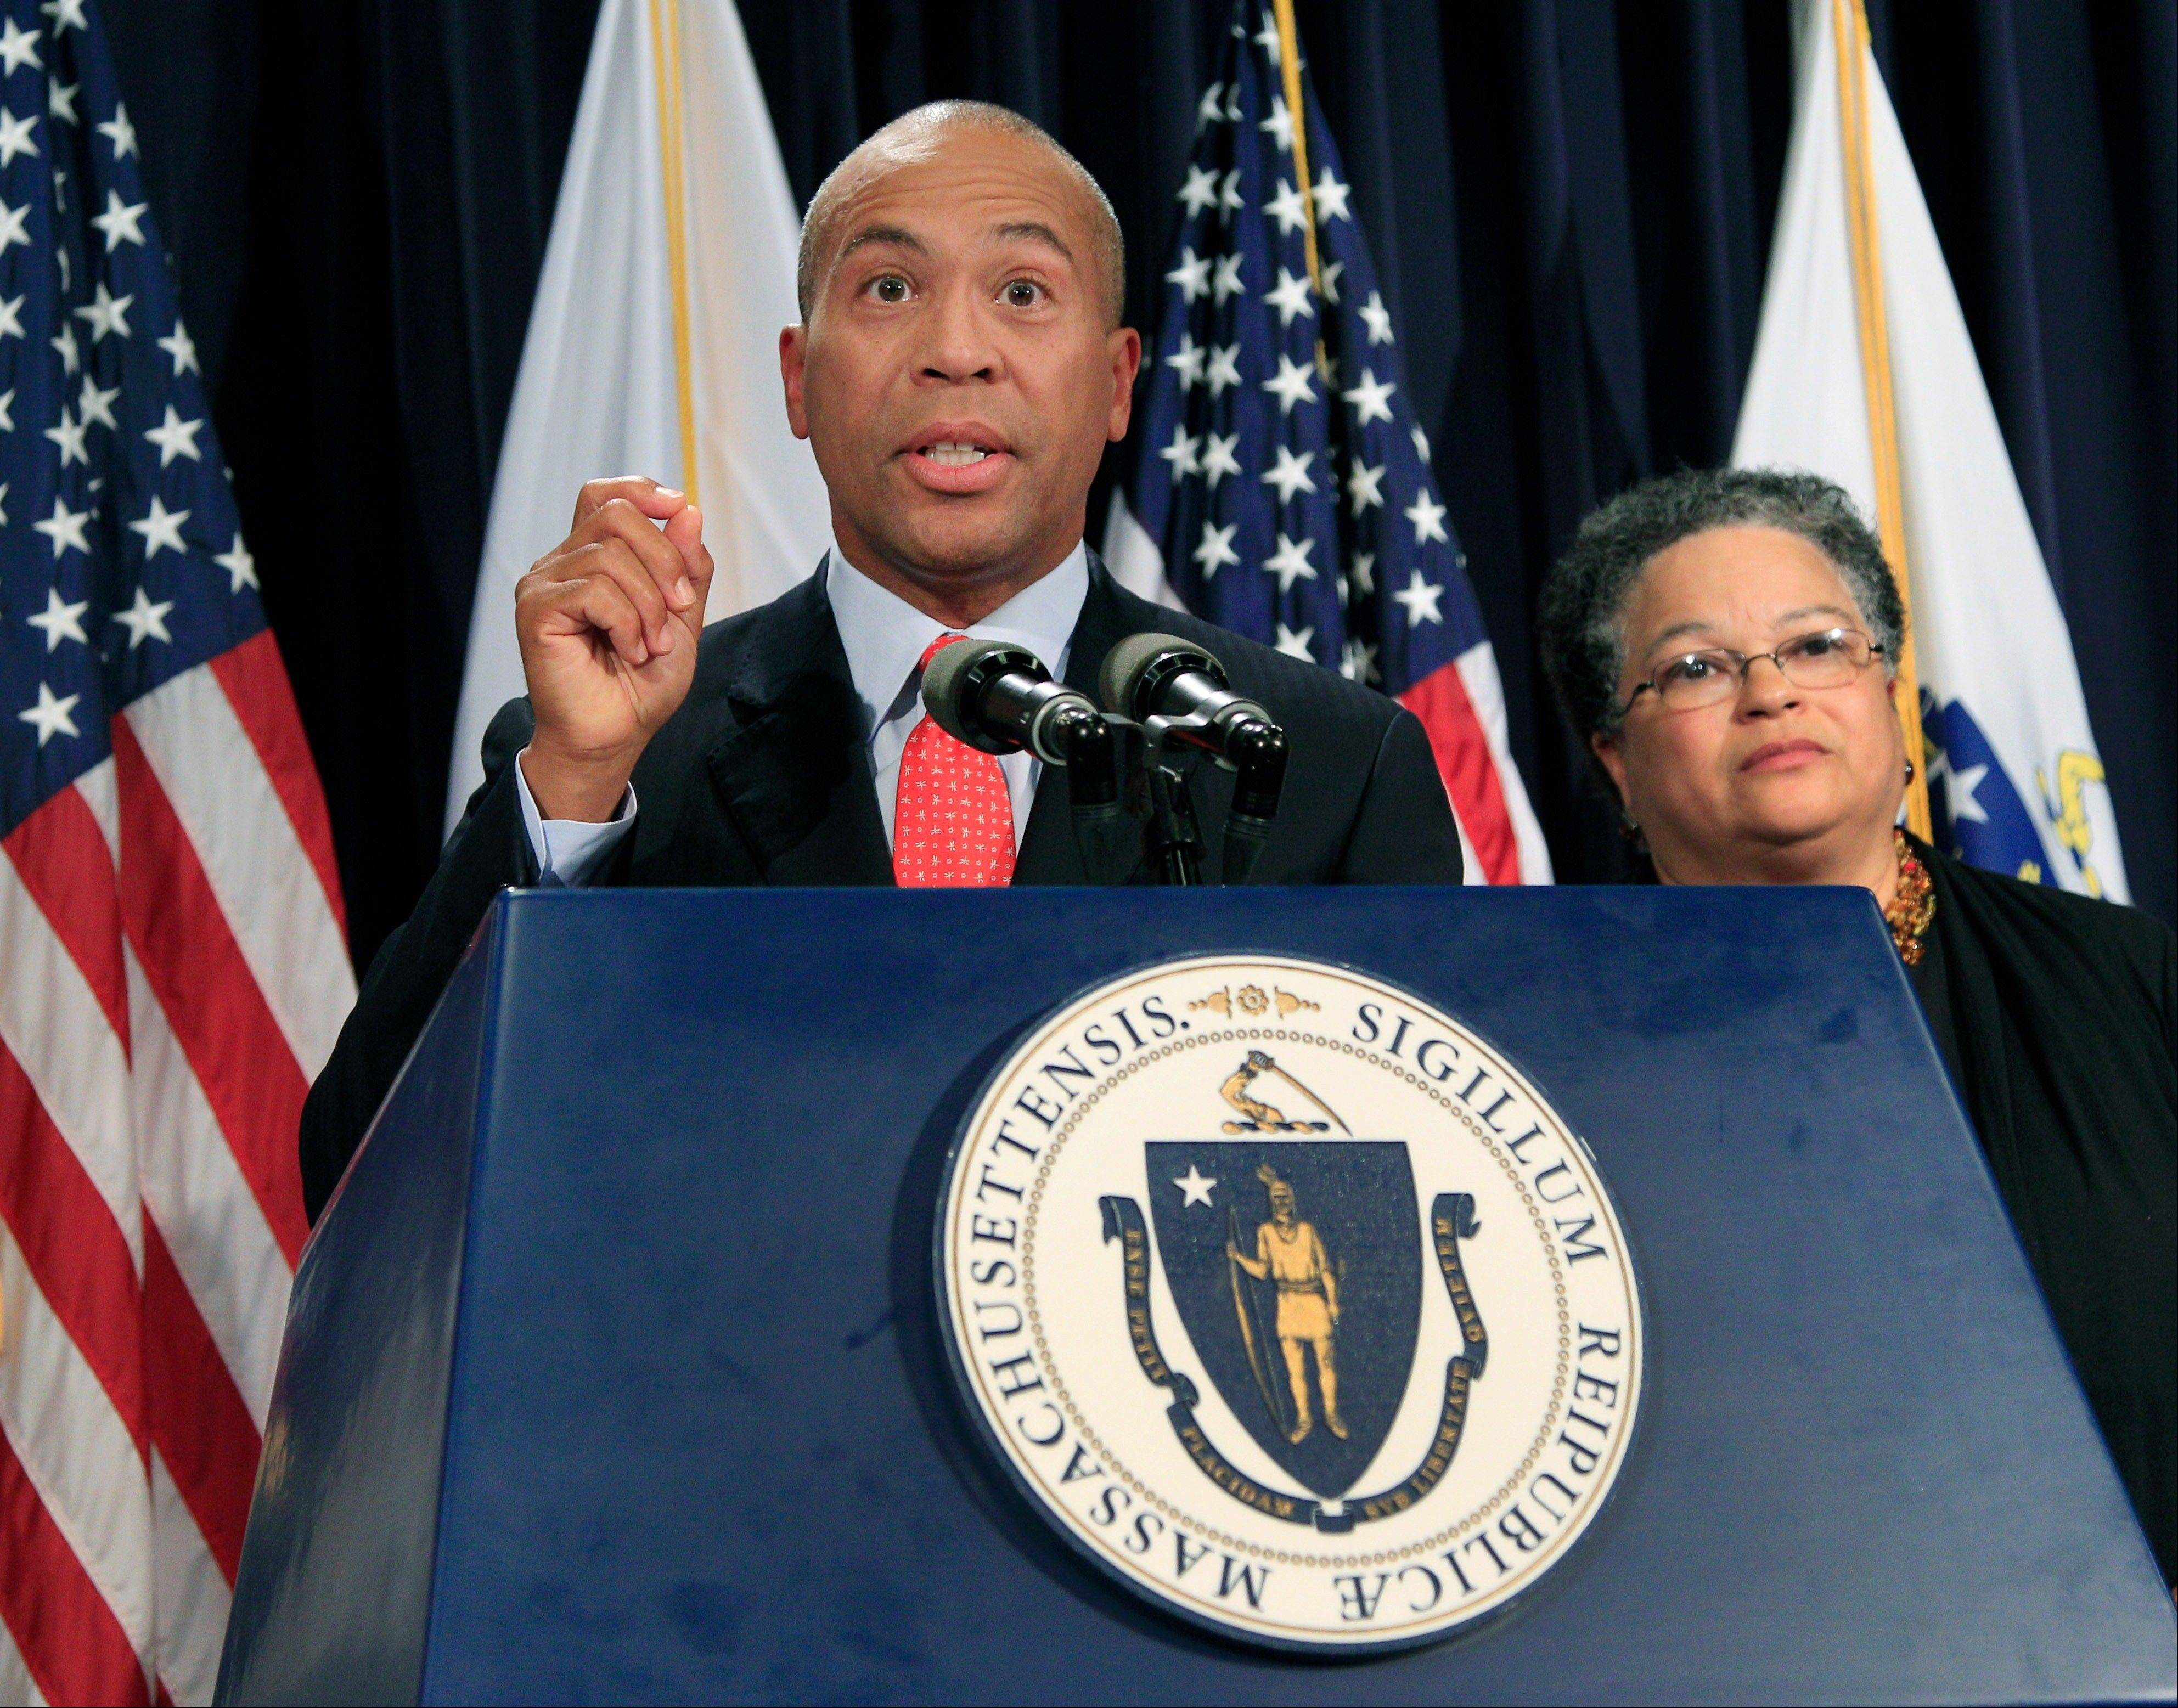 ASSOCIATED PRESS Massachusetts Gov. Deval Patrick speaks, as Health and Human Services Secretary JudyAnn Bigby listens at right, during a news conference at the Statehouse in Boston, where he spoke about the U.S. Supreme Court's decision to uphold President Barack Obama's health care overhaul.